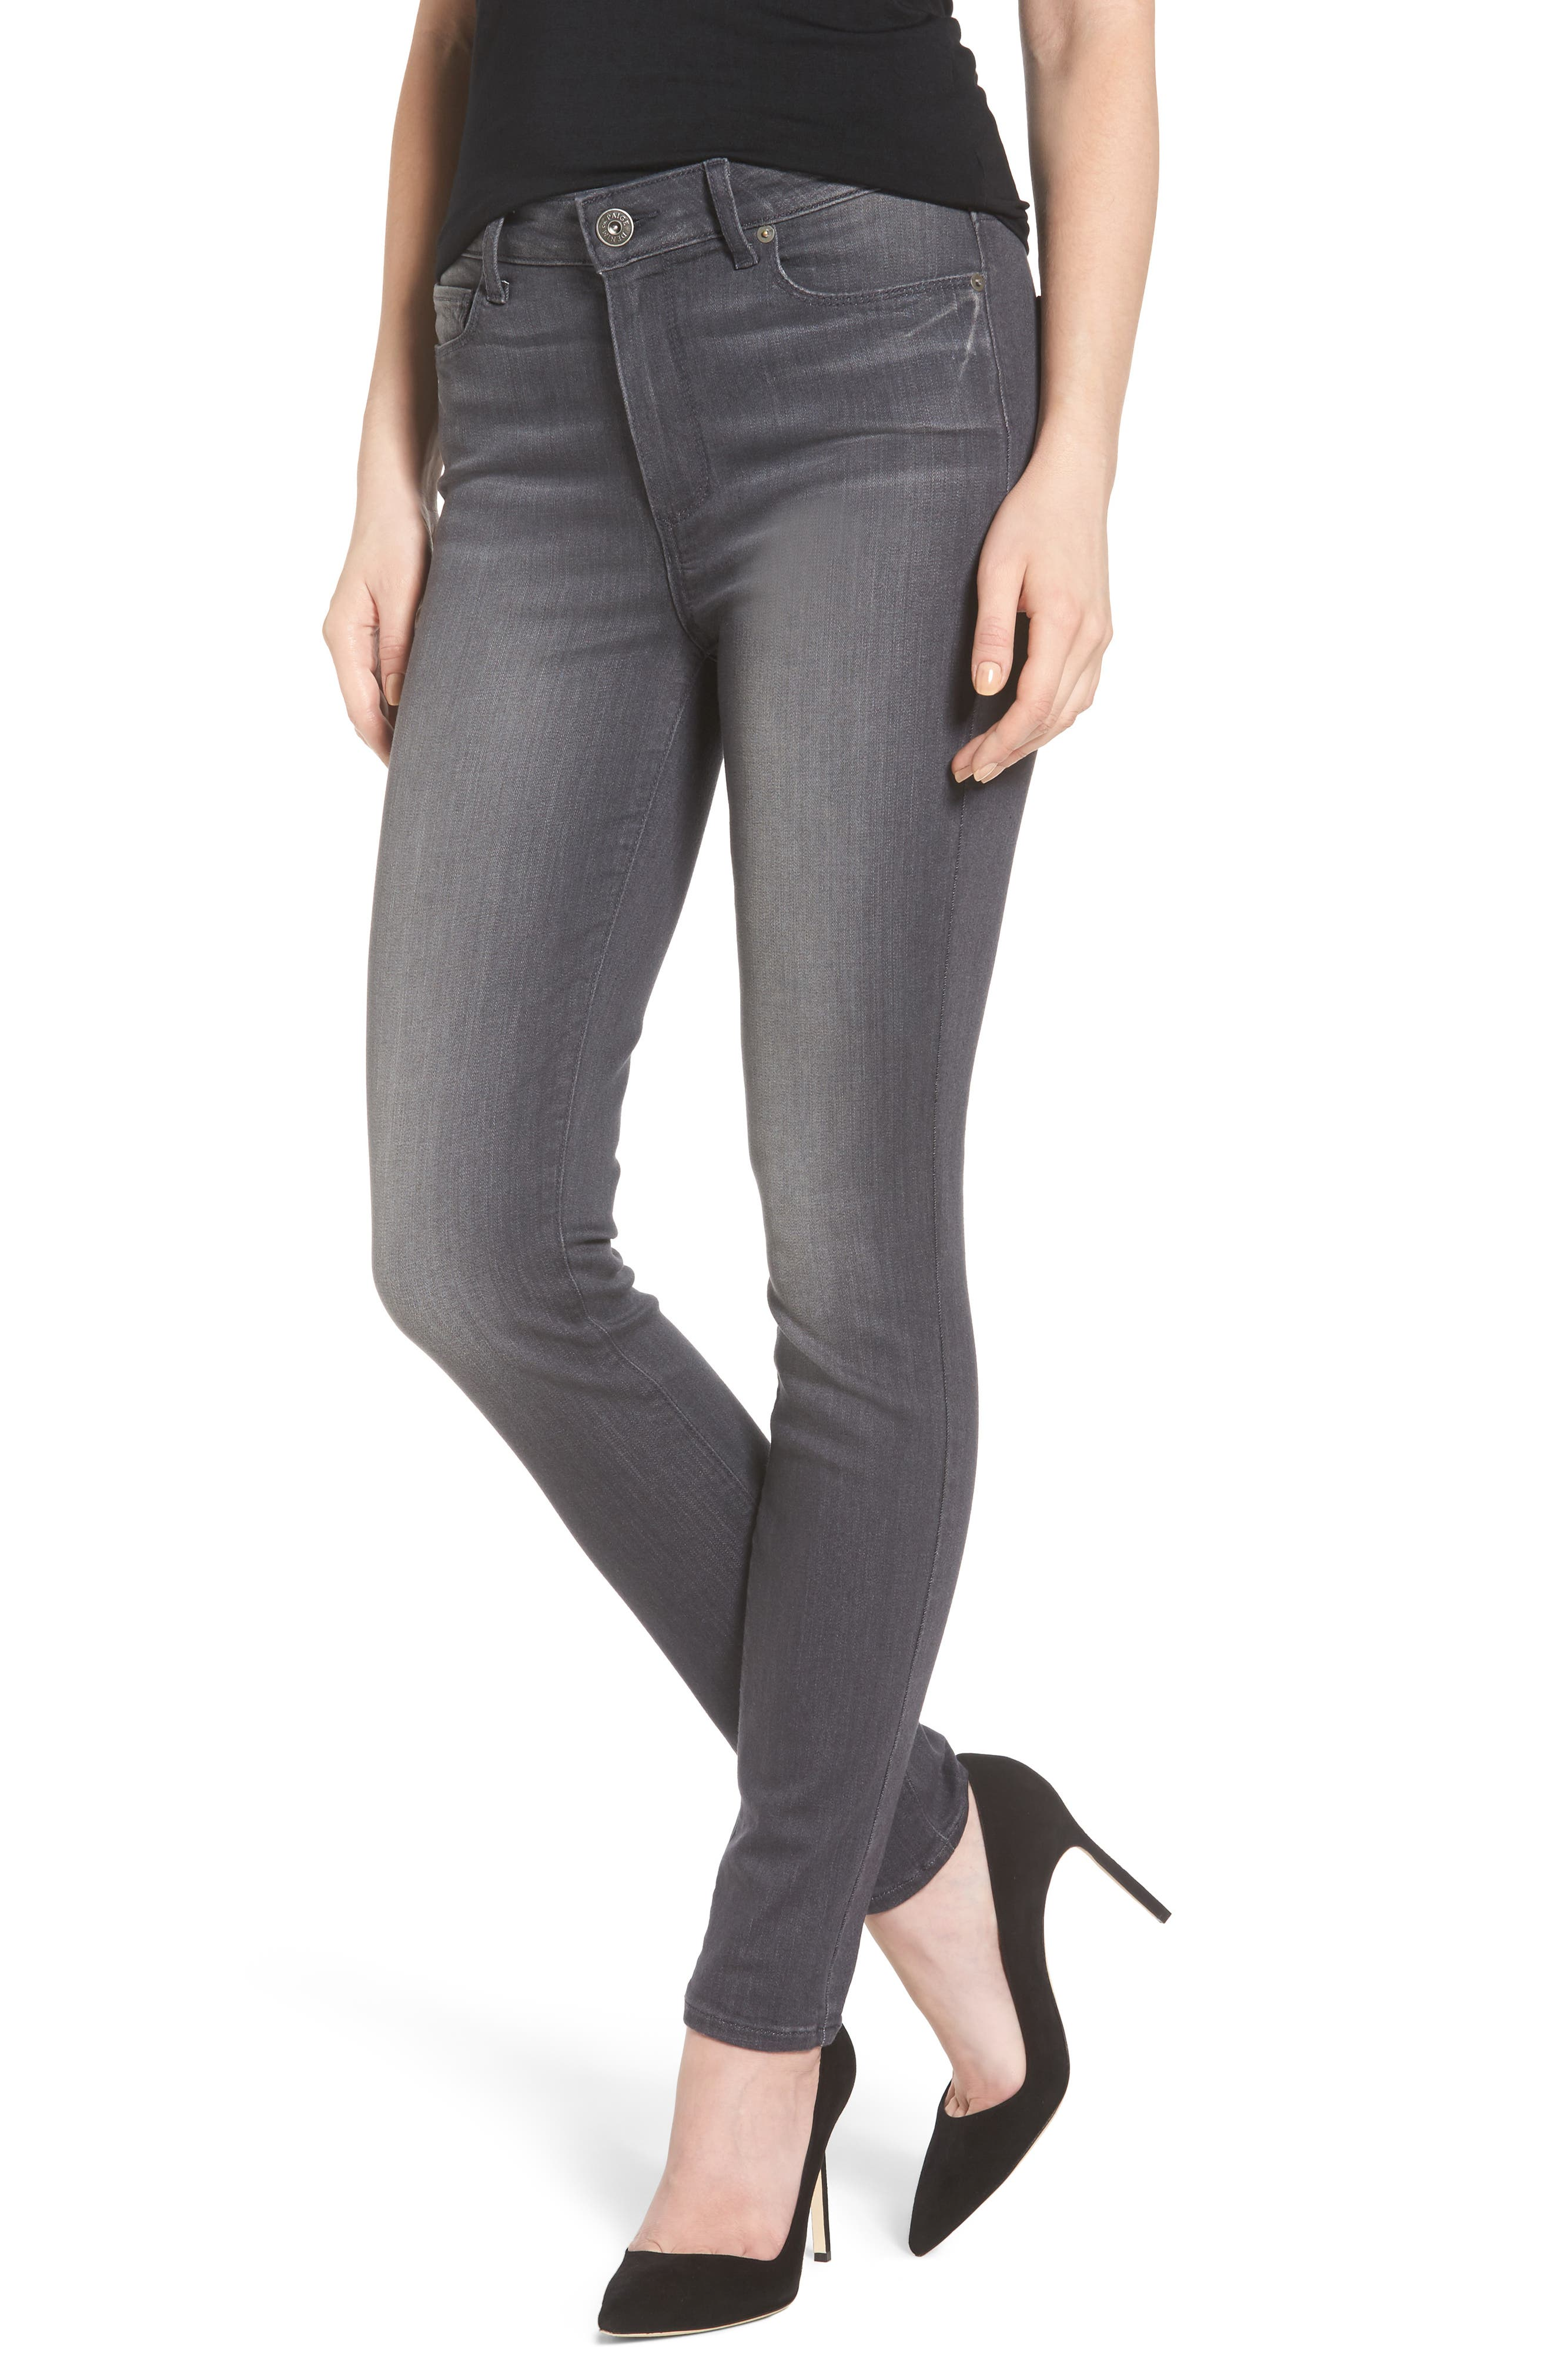 PAIGE Transcend - Hoxton High Waist Ultra Skinny Jeans (Summit Grey)